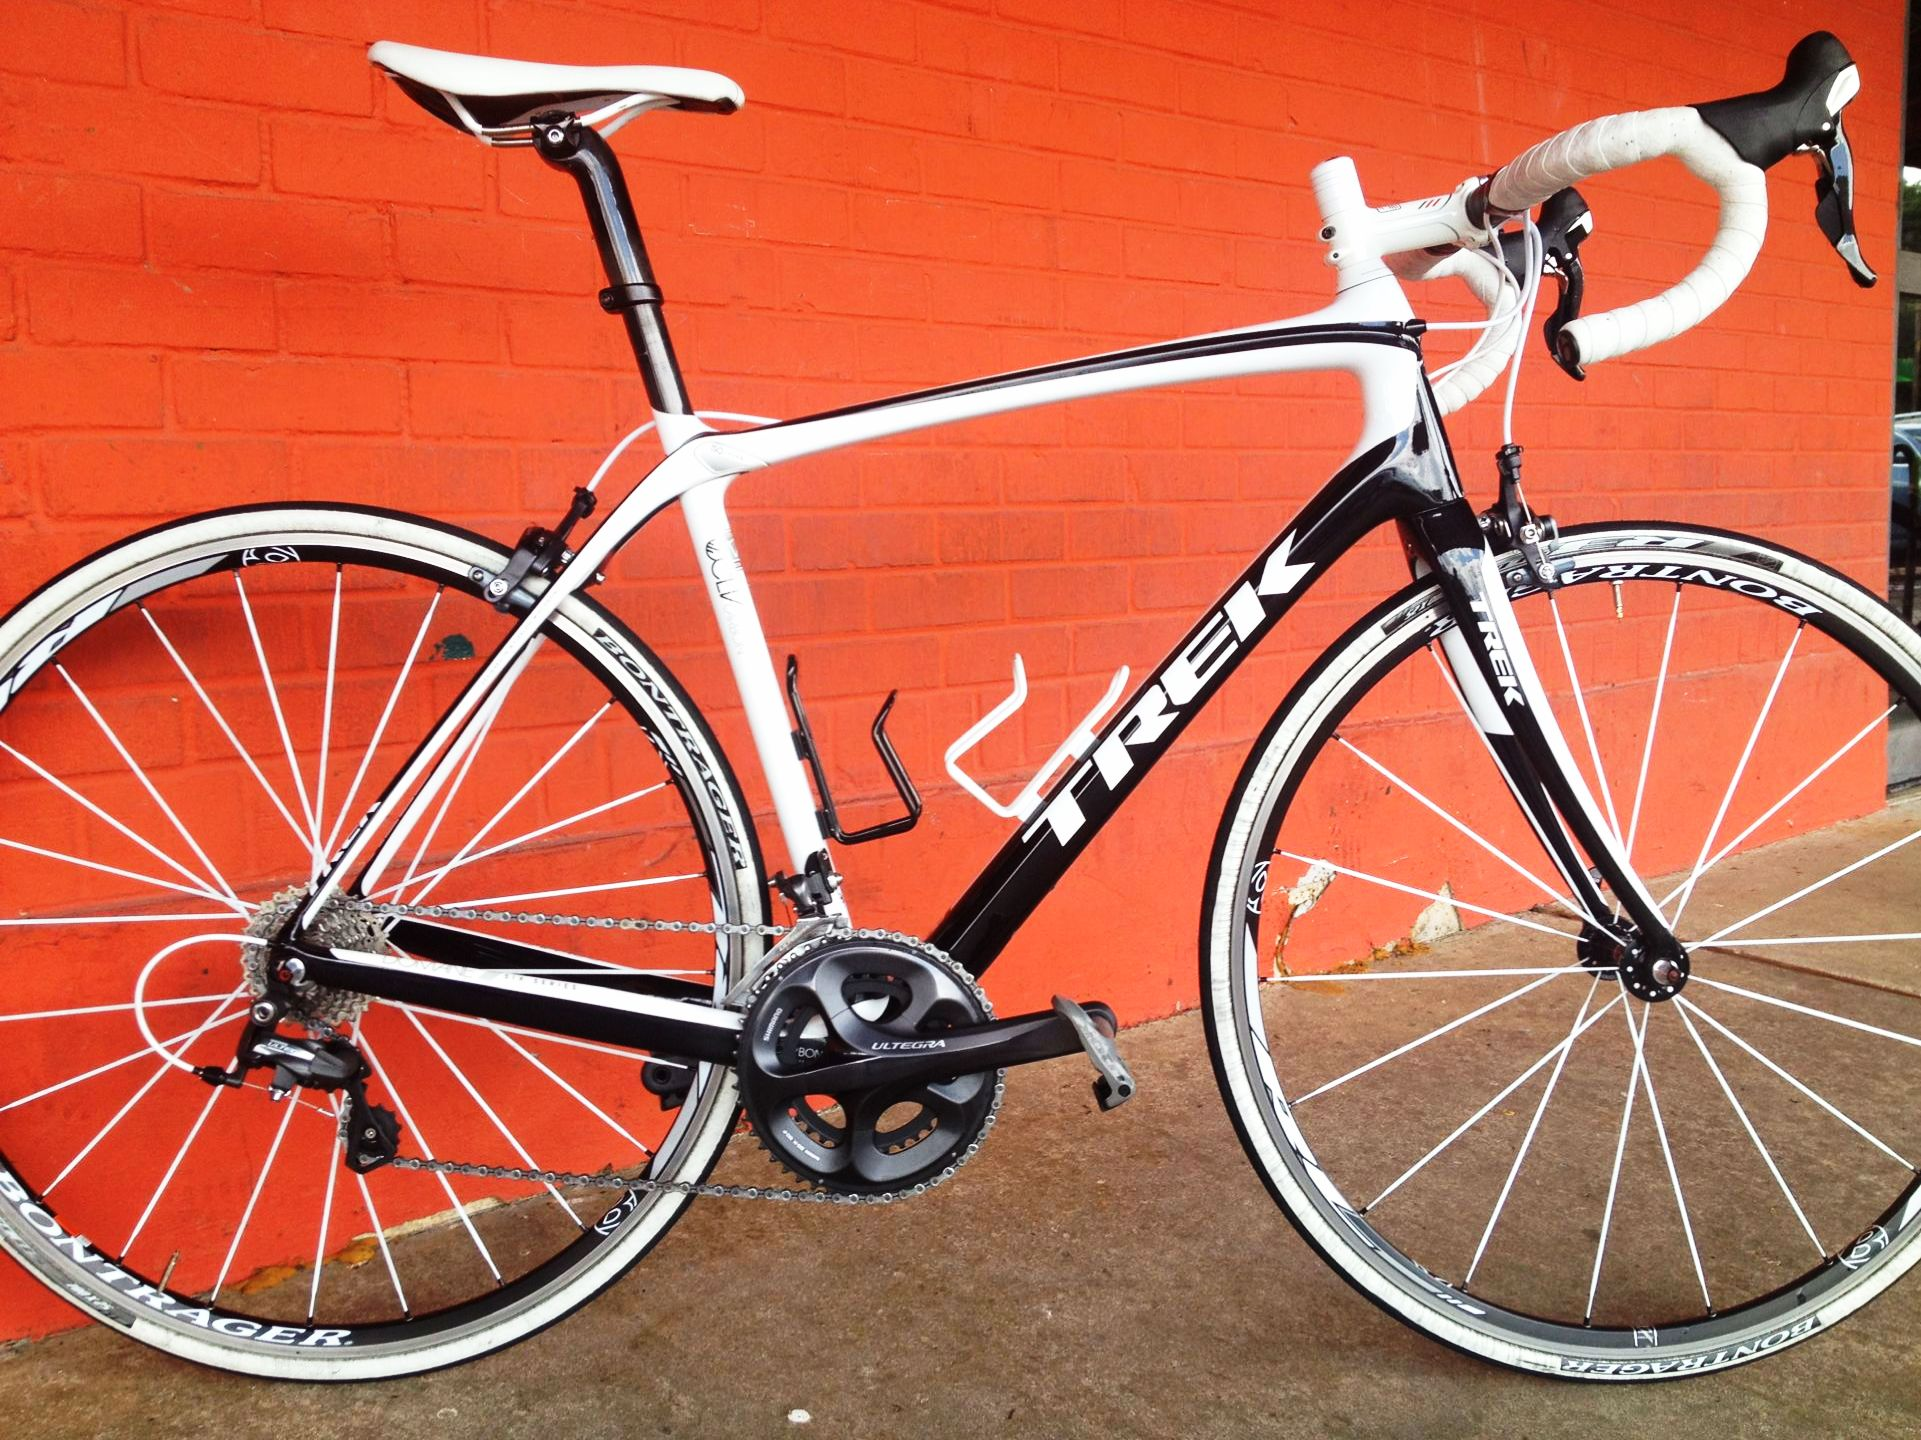 Ridden Reviewed The 2013 Trek Domane It S Time To Ride